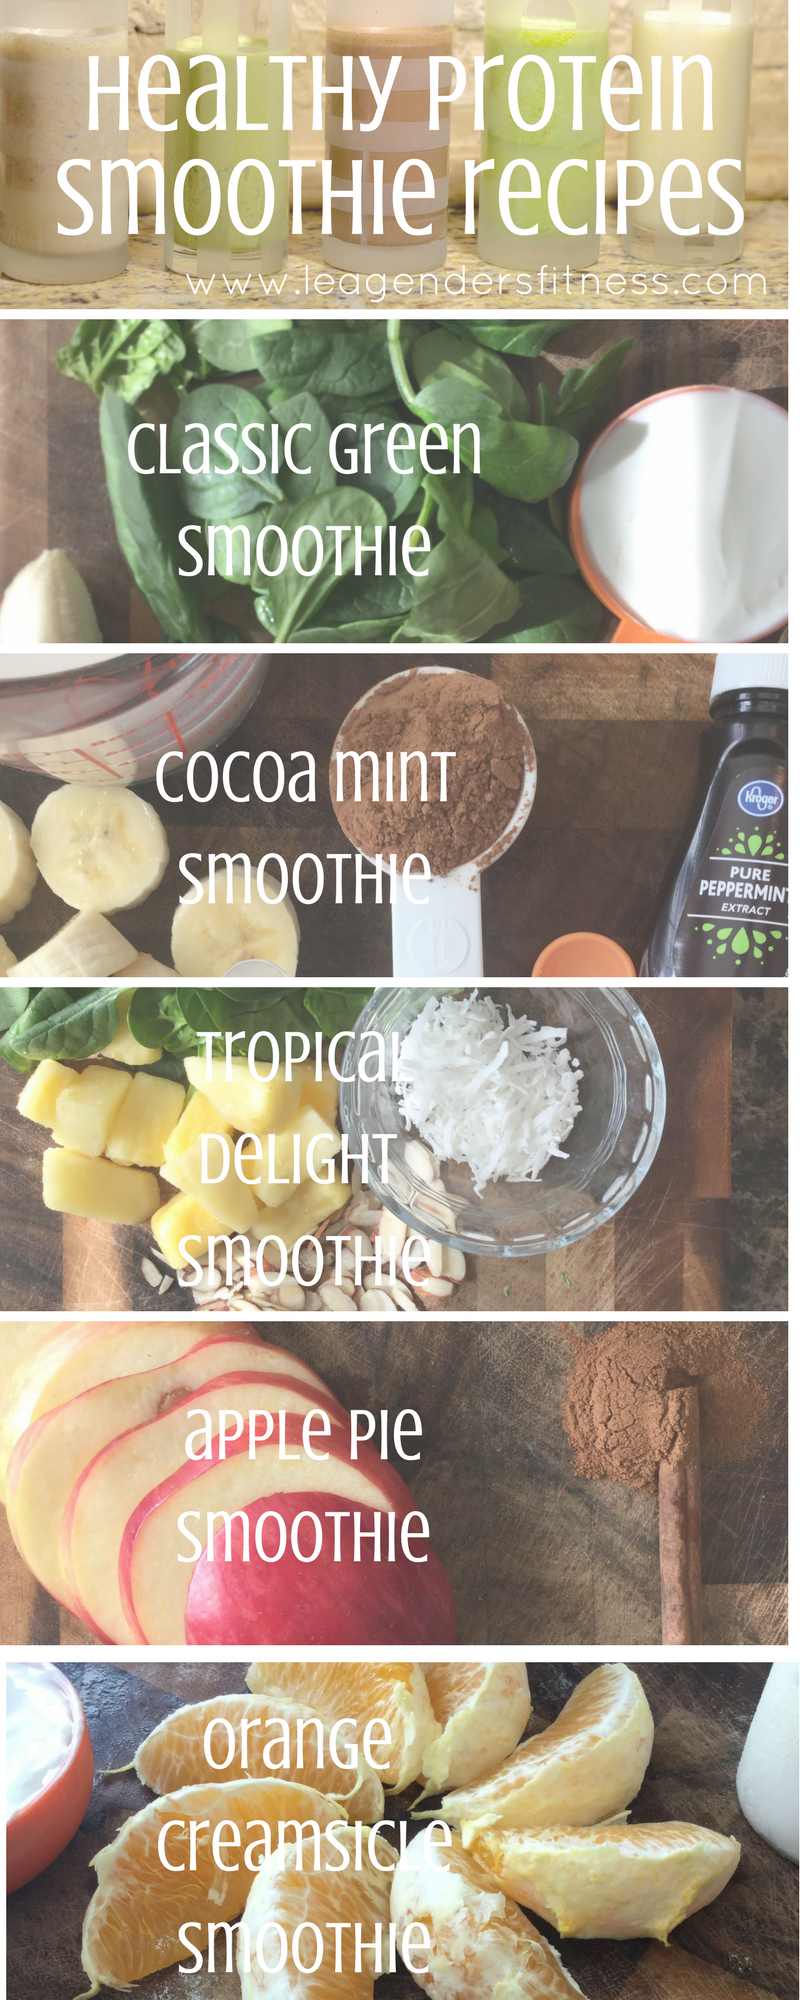 5 healthy high protein smoothie recipes - save to Pinterest for later!